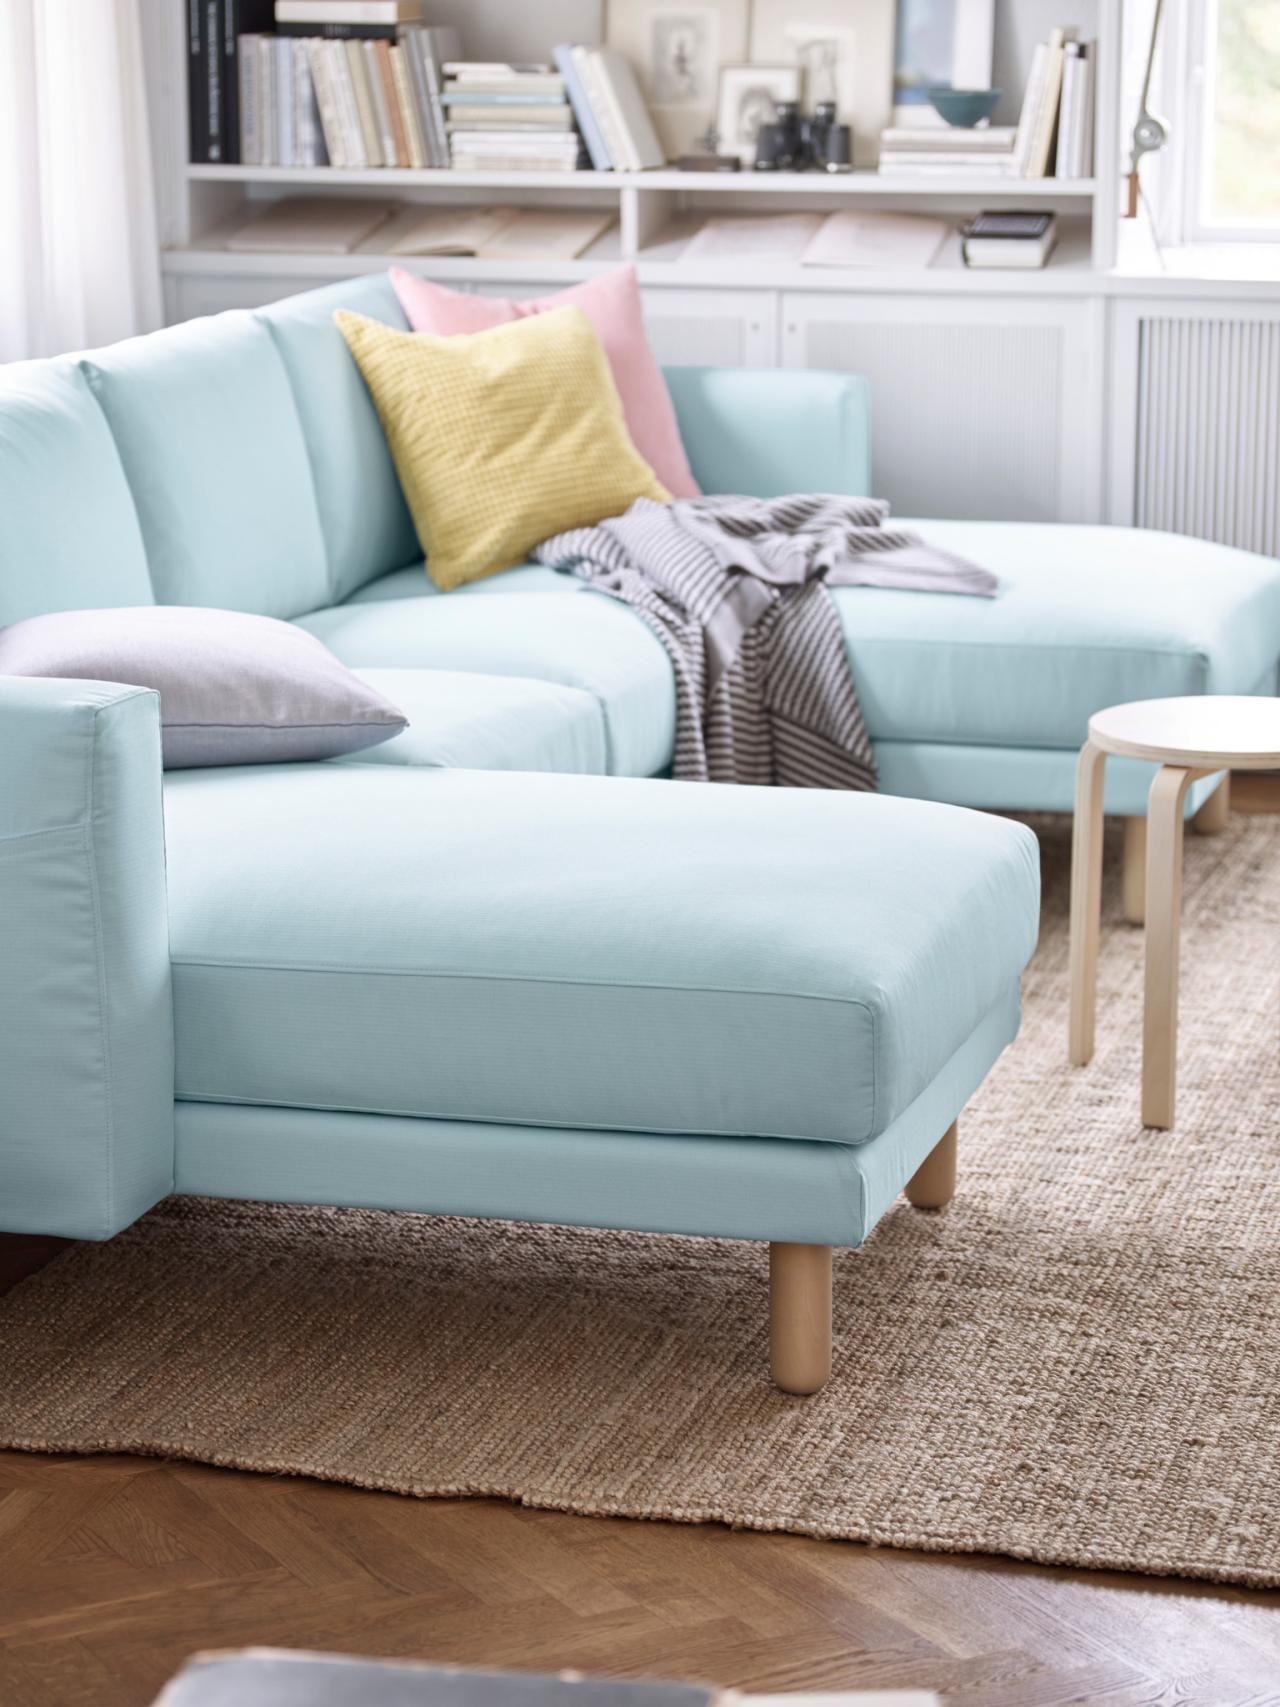 5 Apartment Sized Sofas That Are Lifesavers | HGTV\'s Decorating ...